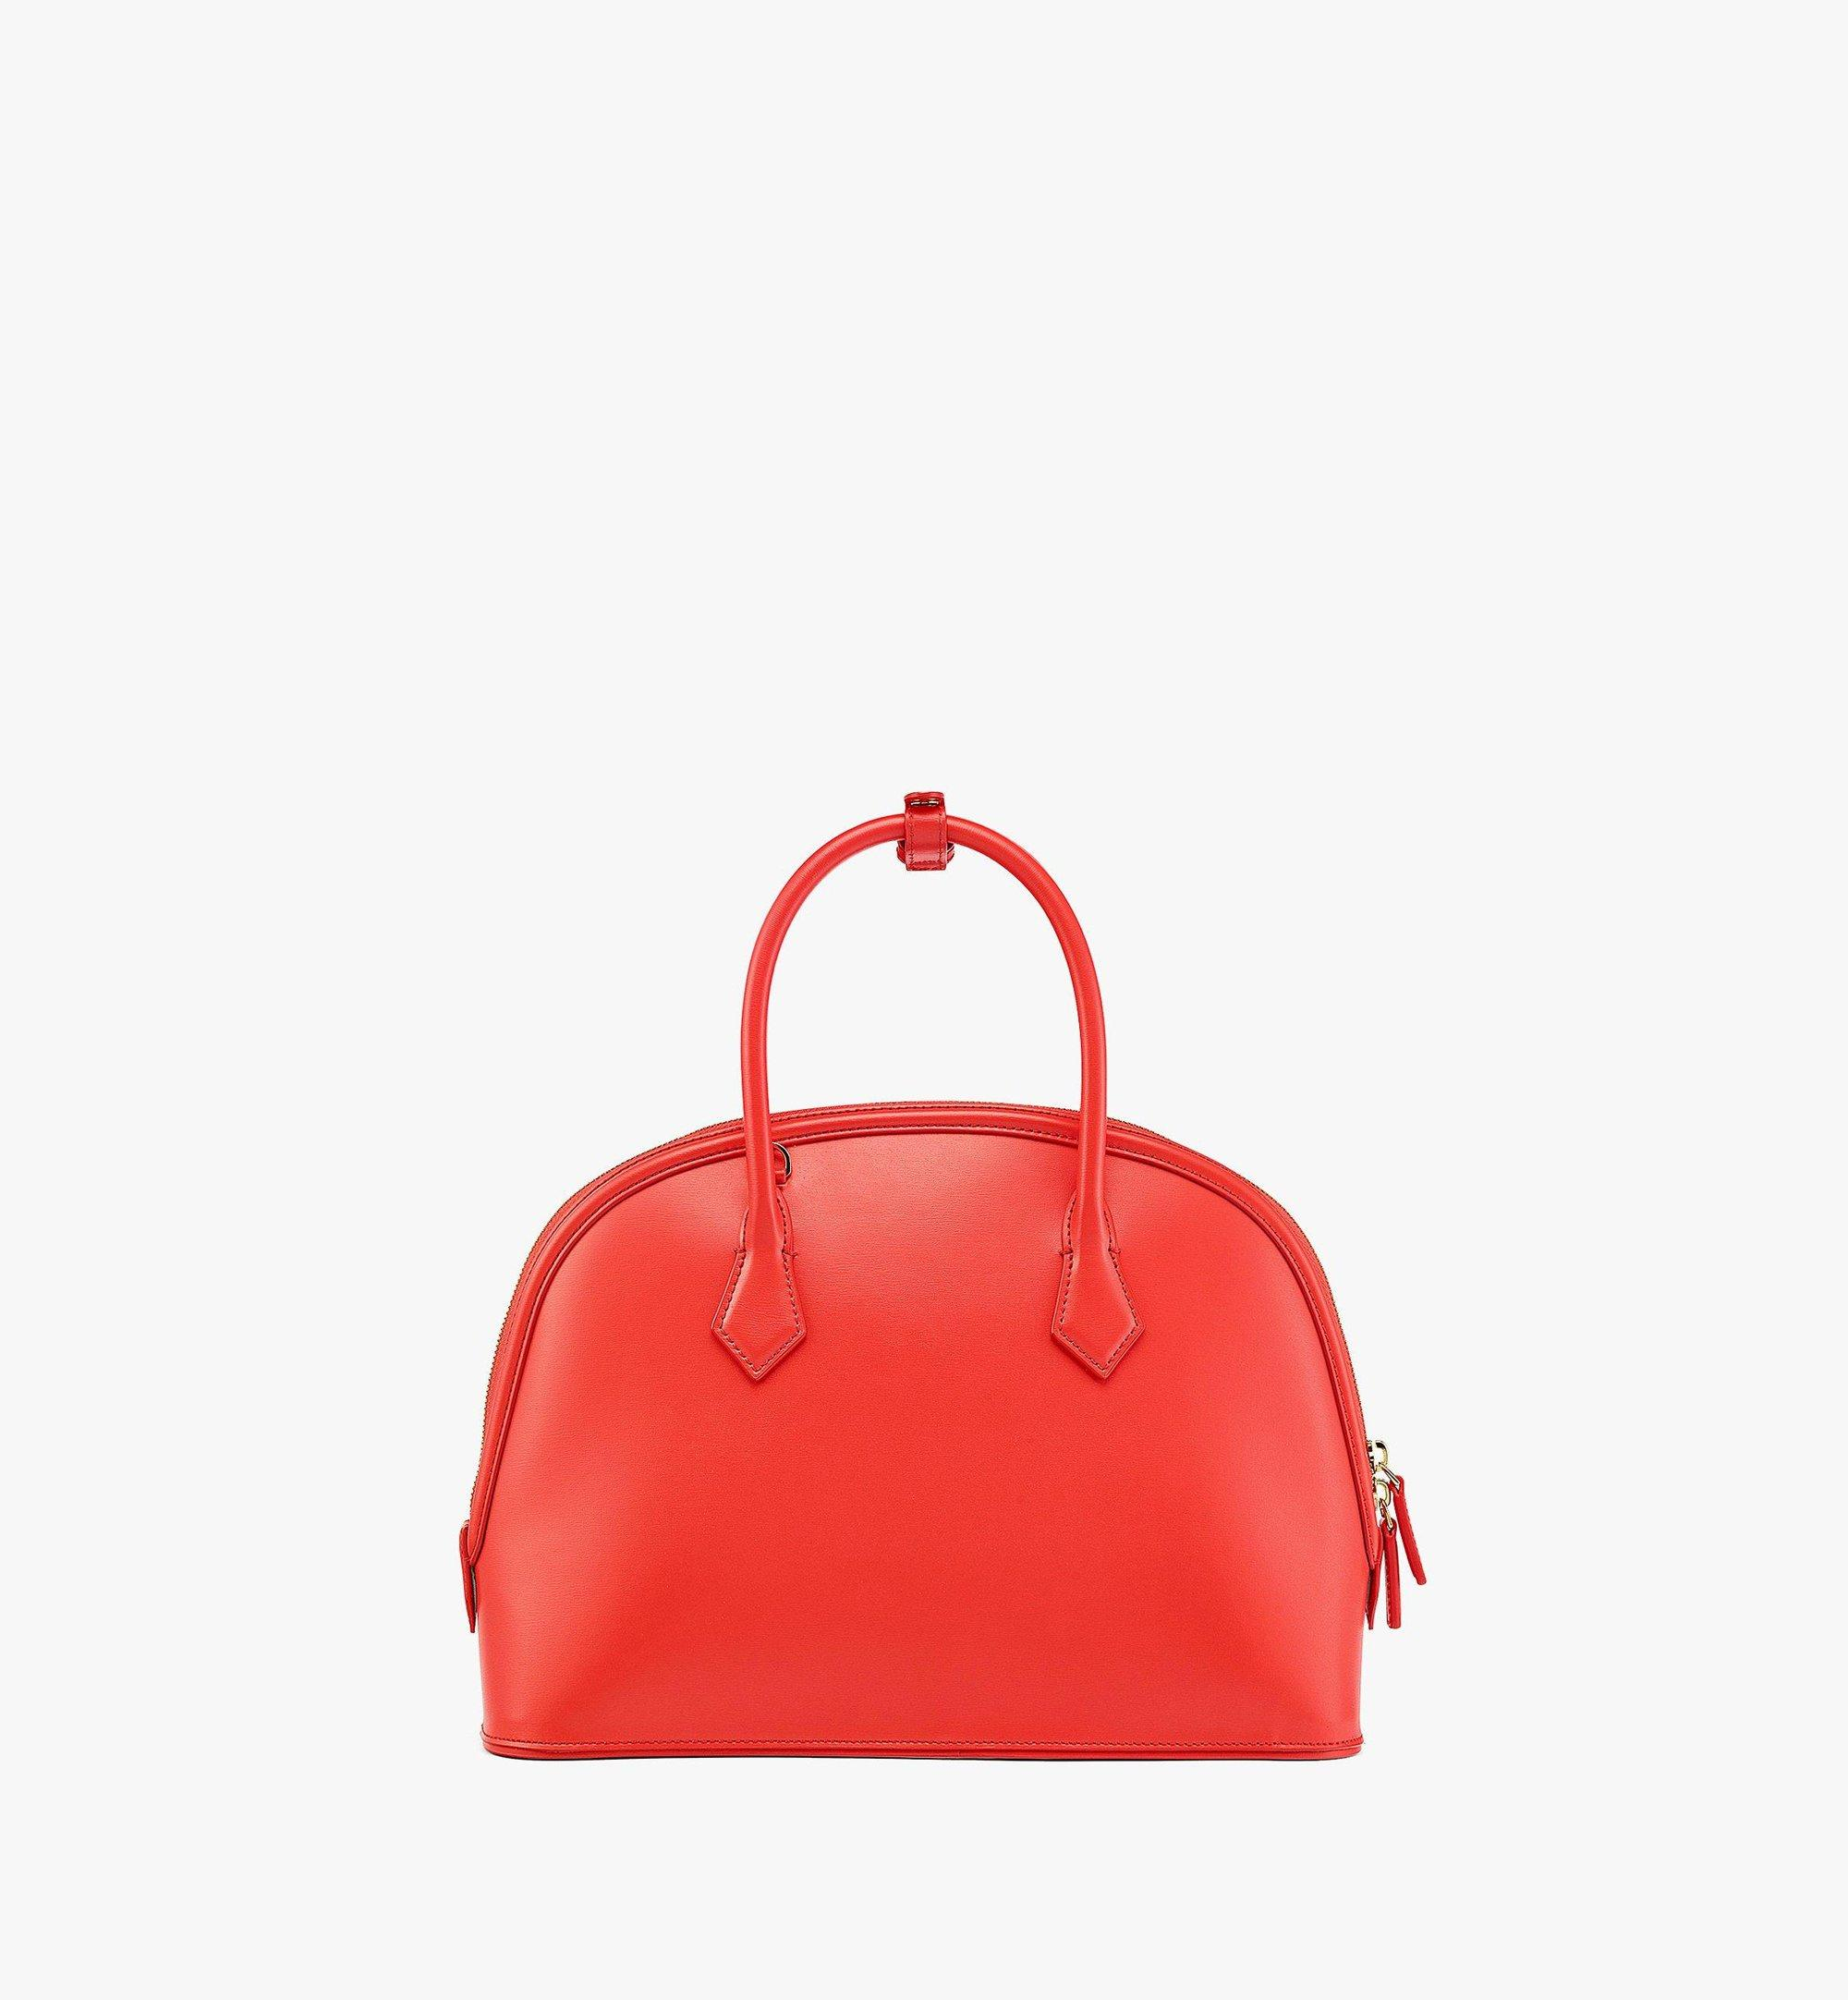 MCM Anna Tote in Spanish Leather Red MWTBSNN03R8001 Alternate View 3